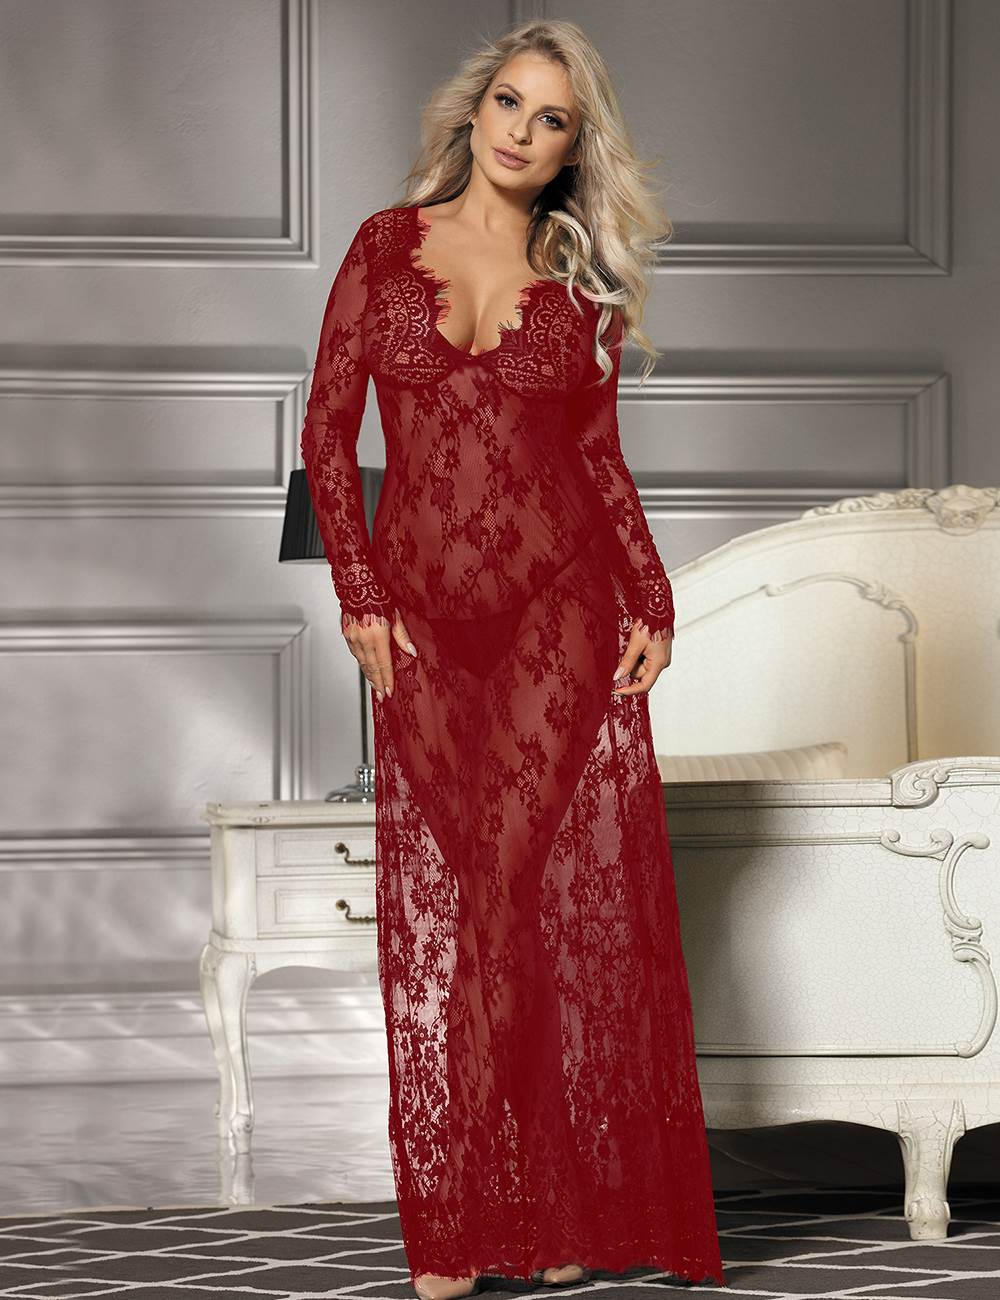 Wine Red Delicate Lace Long Sleepwear Gown